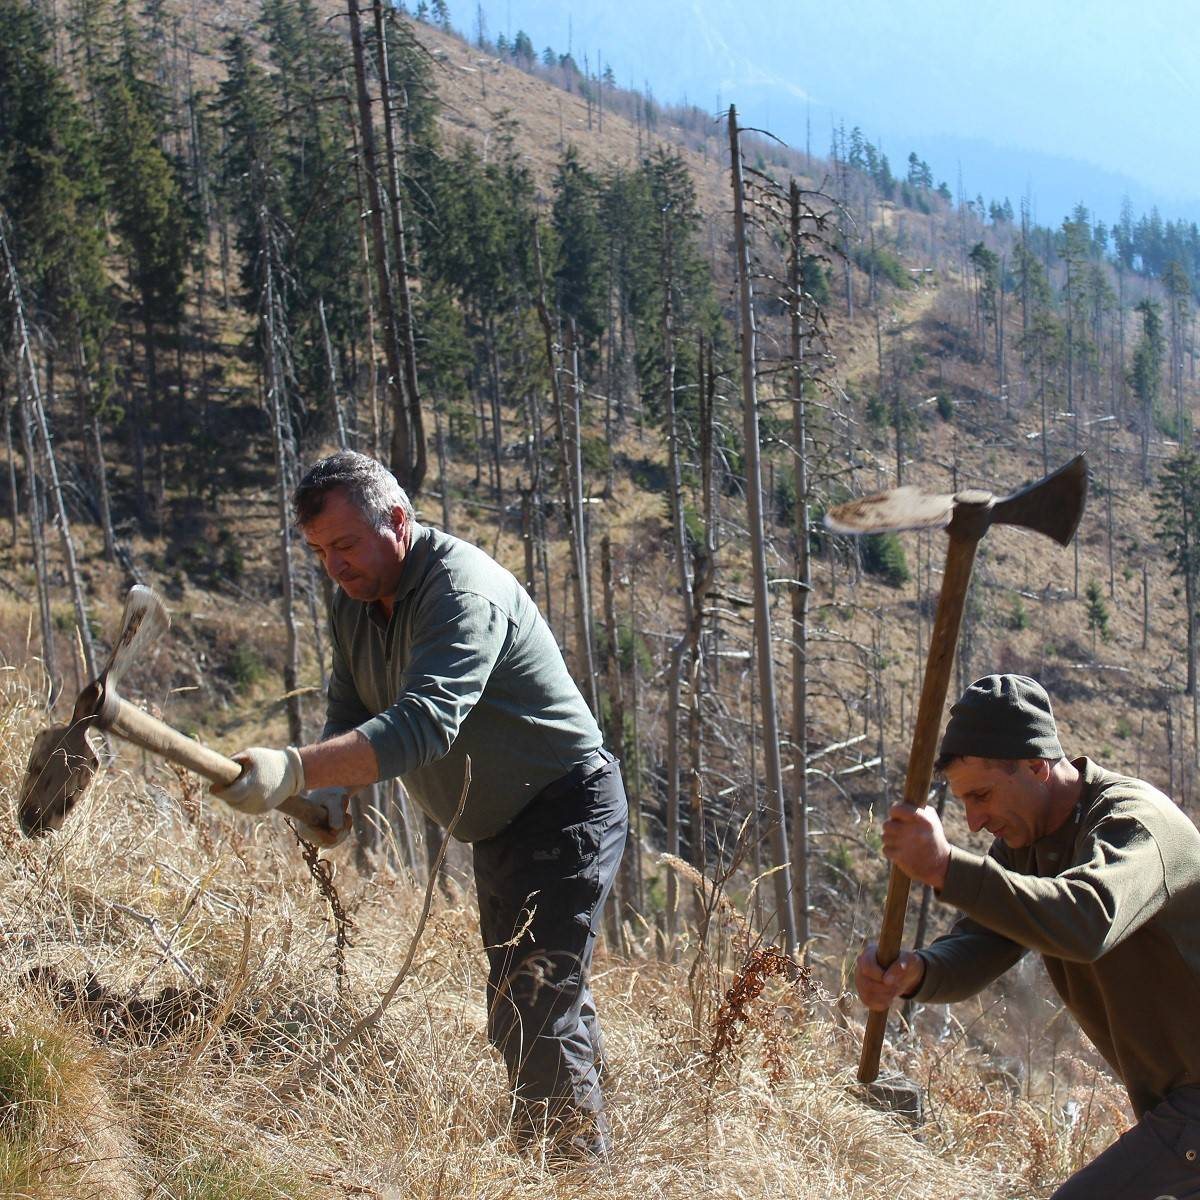 Two men planting trees in the Southern Carpathian mountains